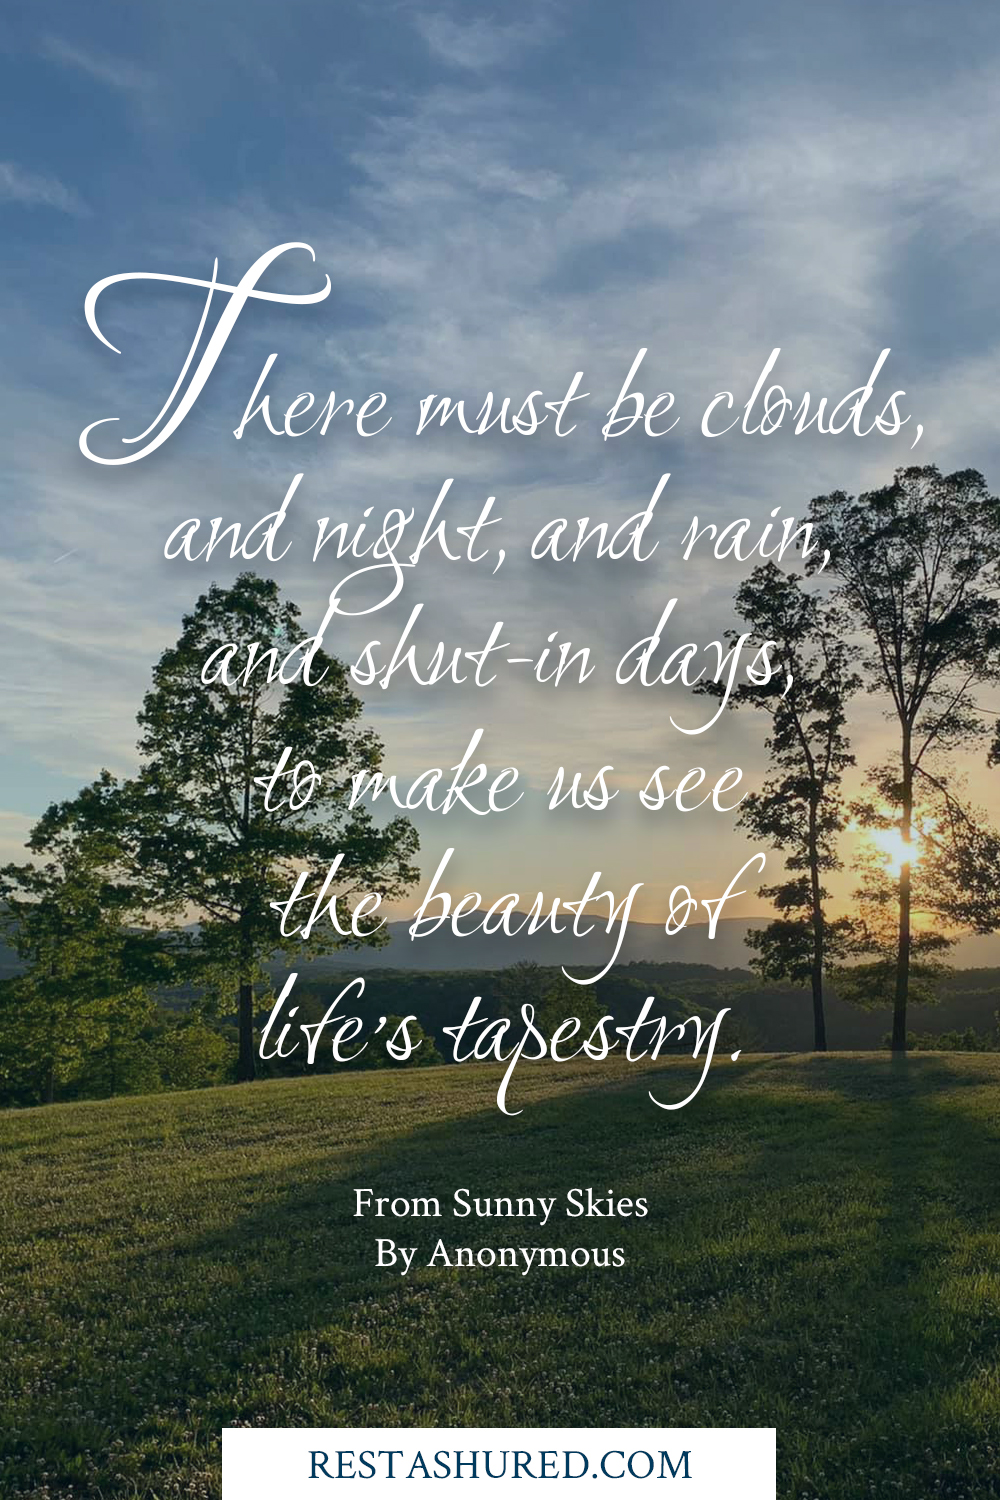 Sunny Skies poem for a cremation funeral